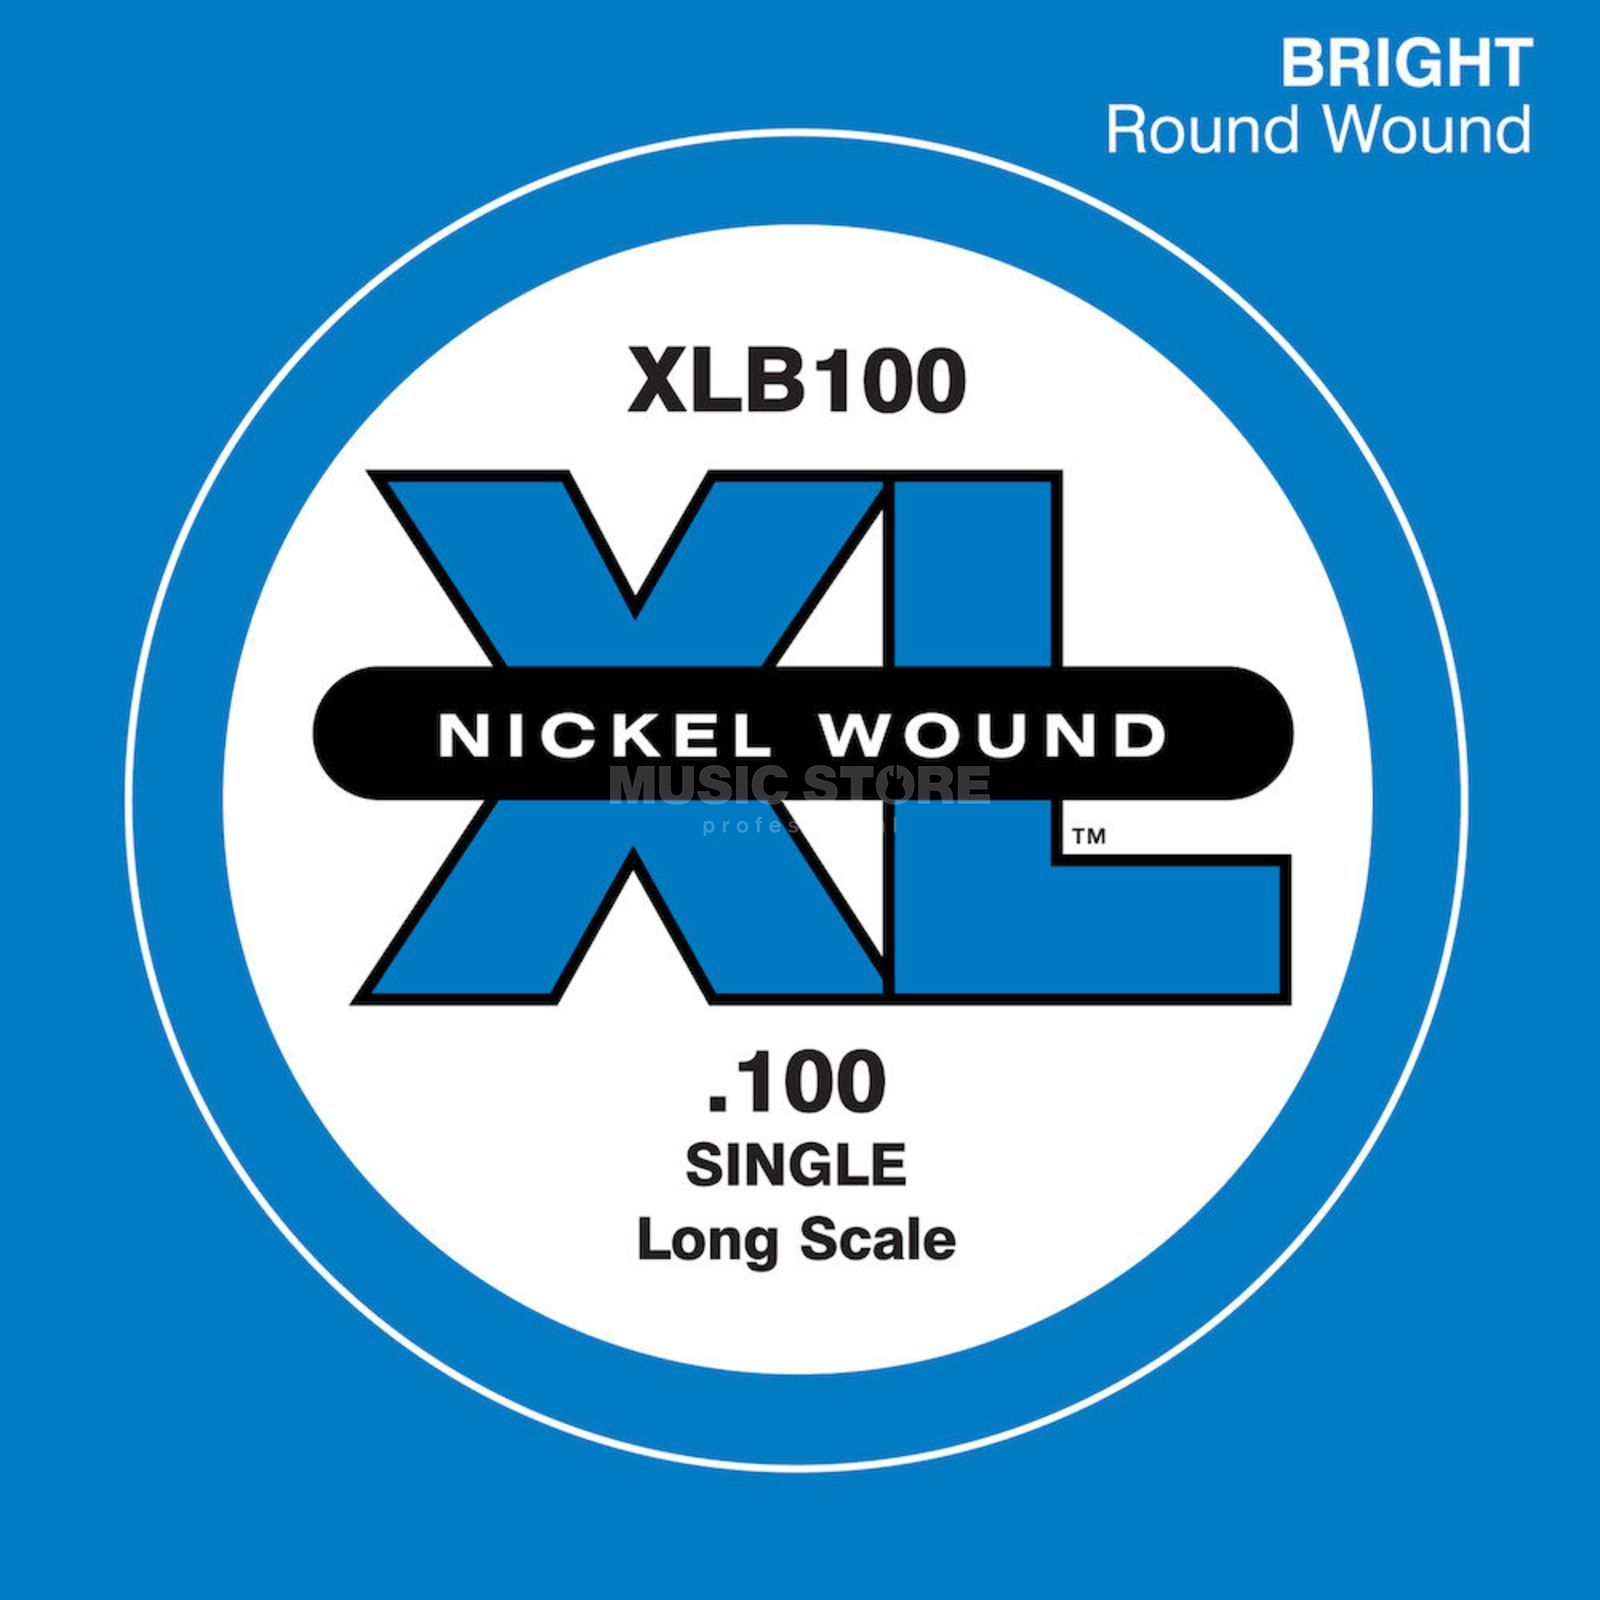 D'Addario Bass Single String XLB100 XL Nickel Wound Zdjęcie produktu